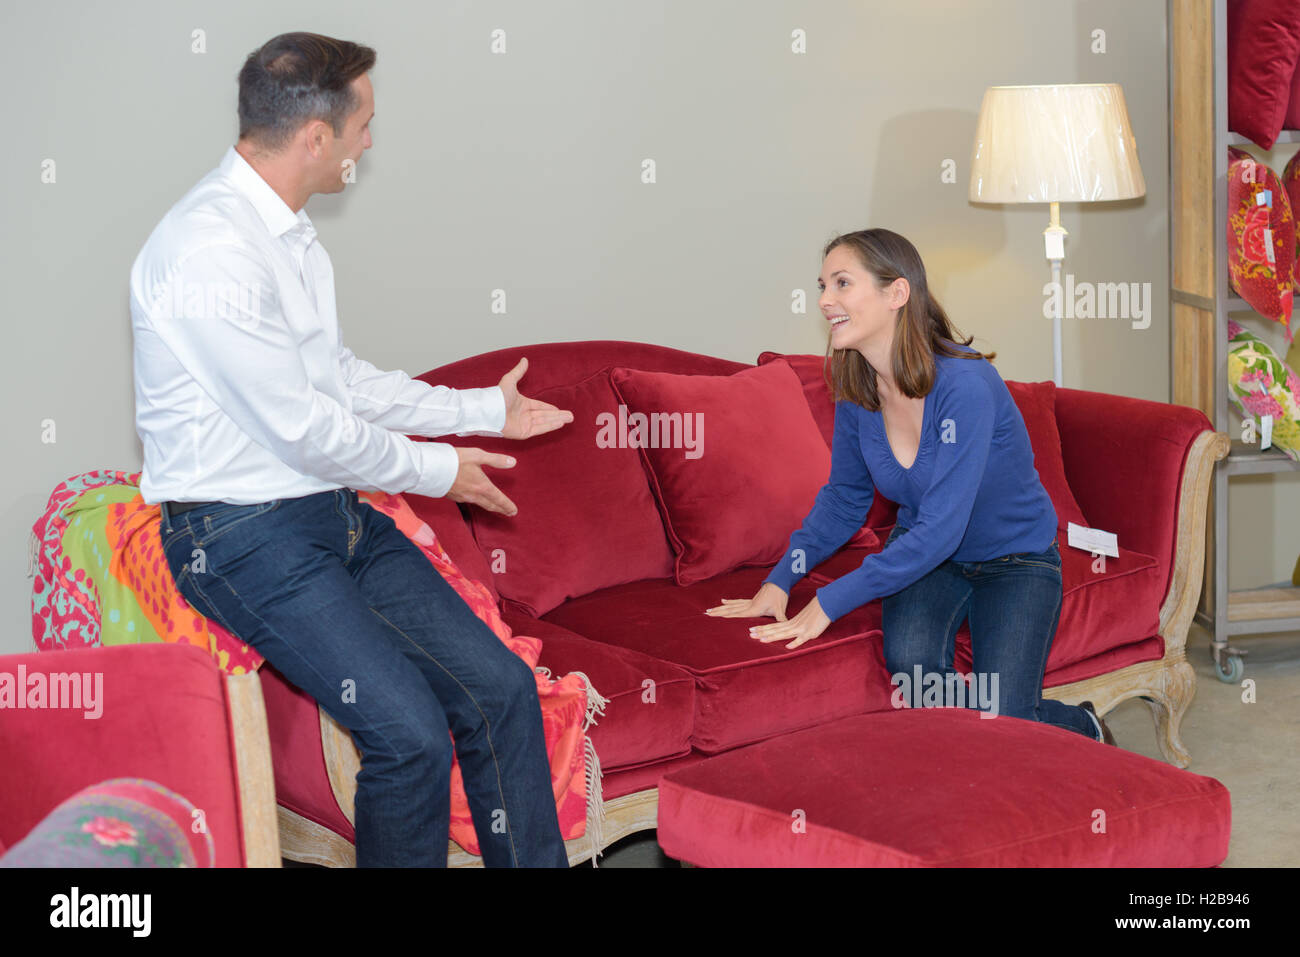 Woman inviting man to test sofa with her Stock Photo